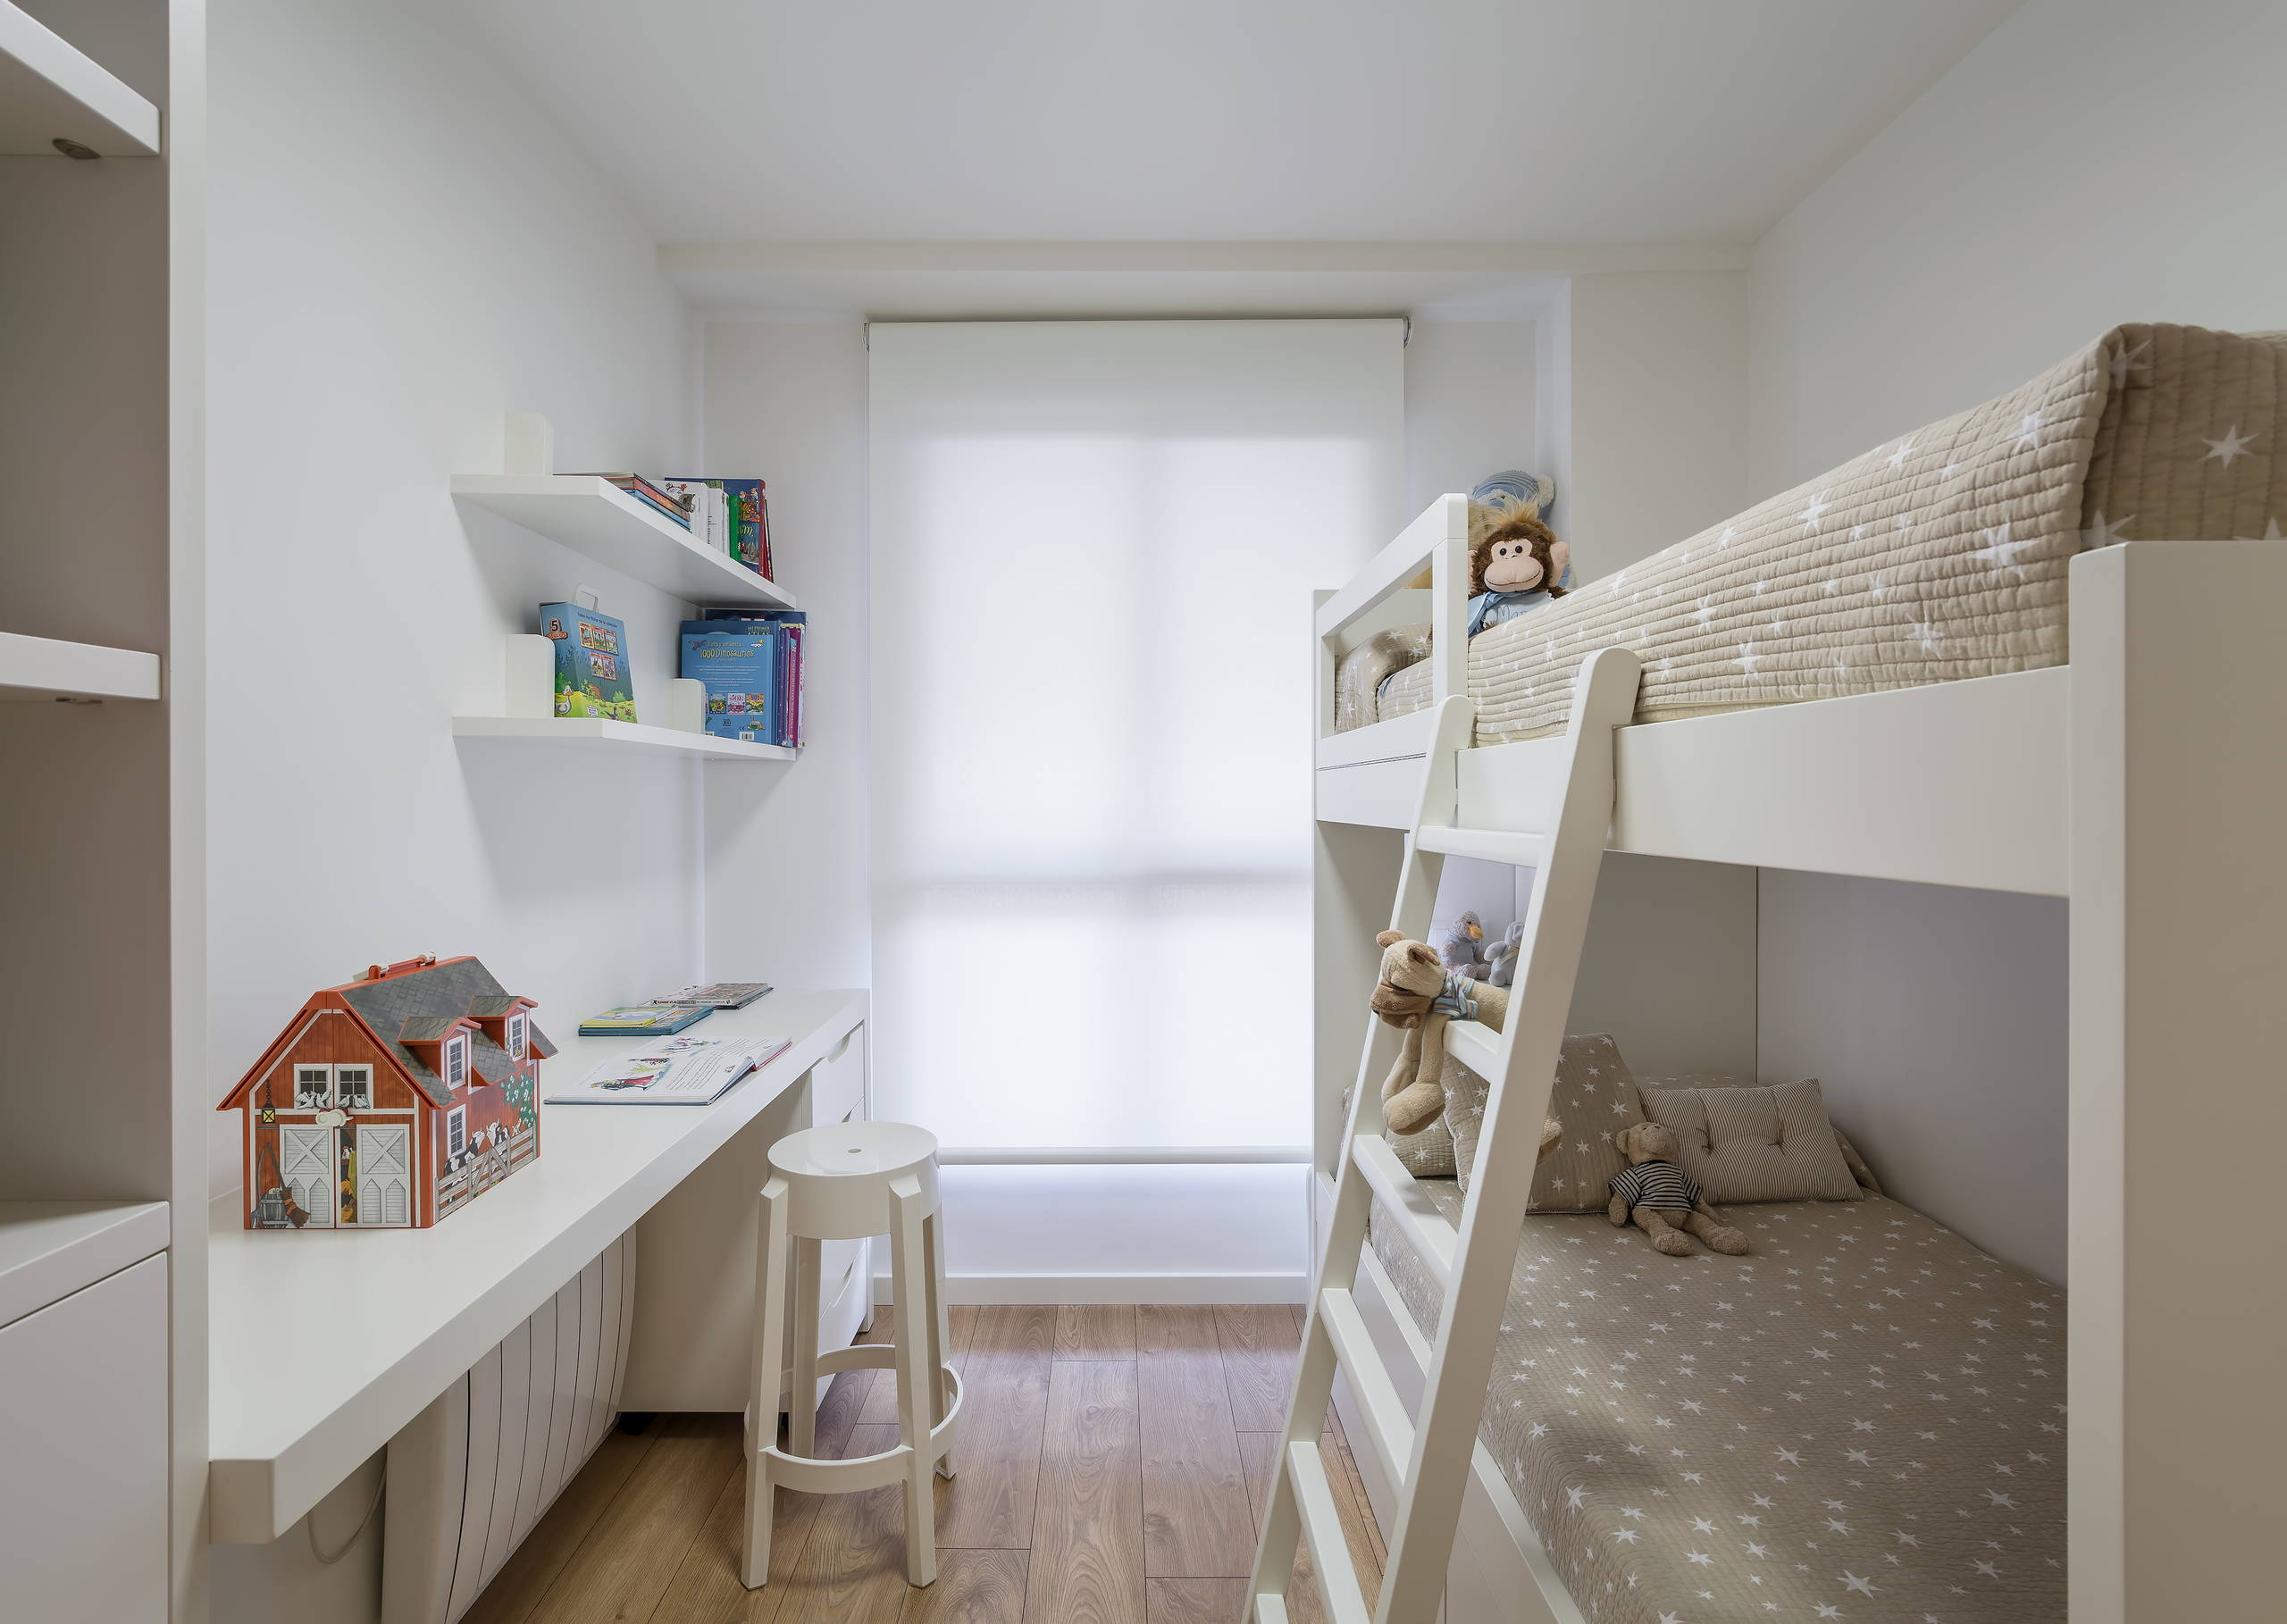 15 enjoyable modern kids 39 room designs that will entertain for Ideas para decorar una recamara